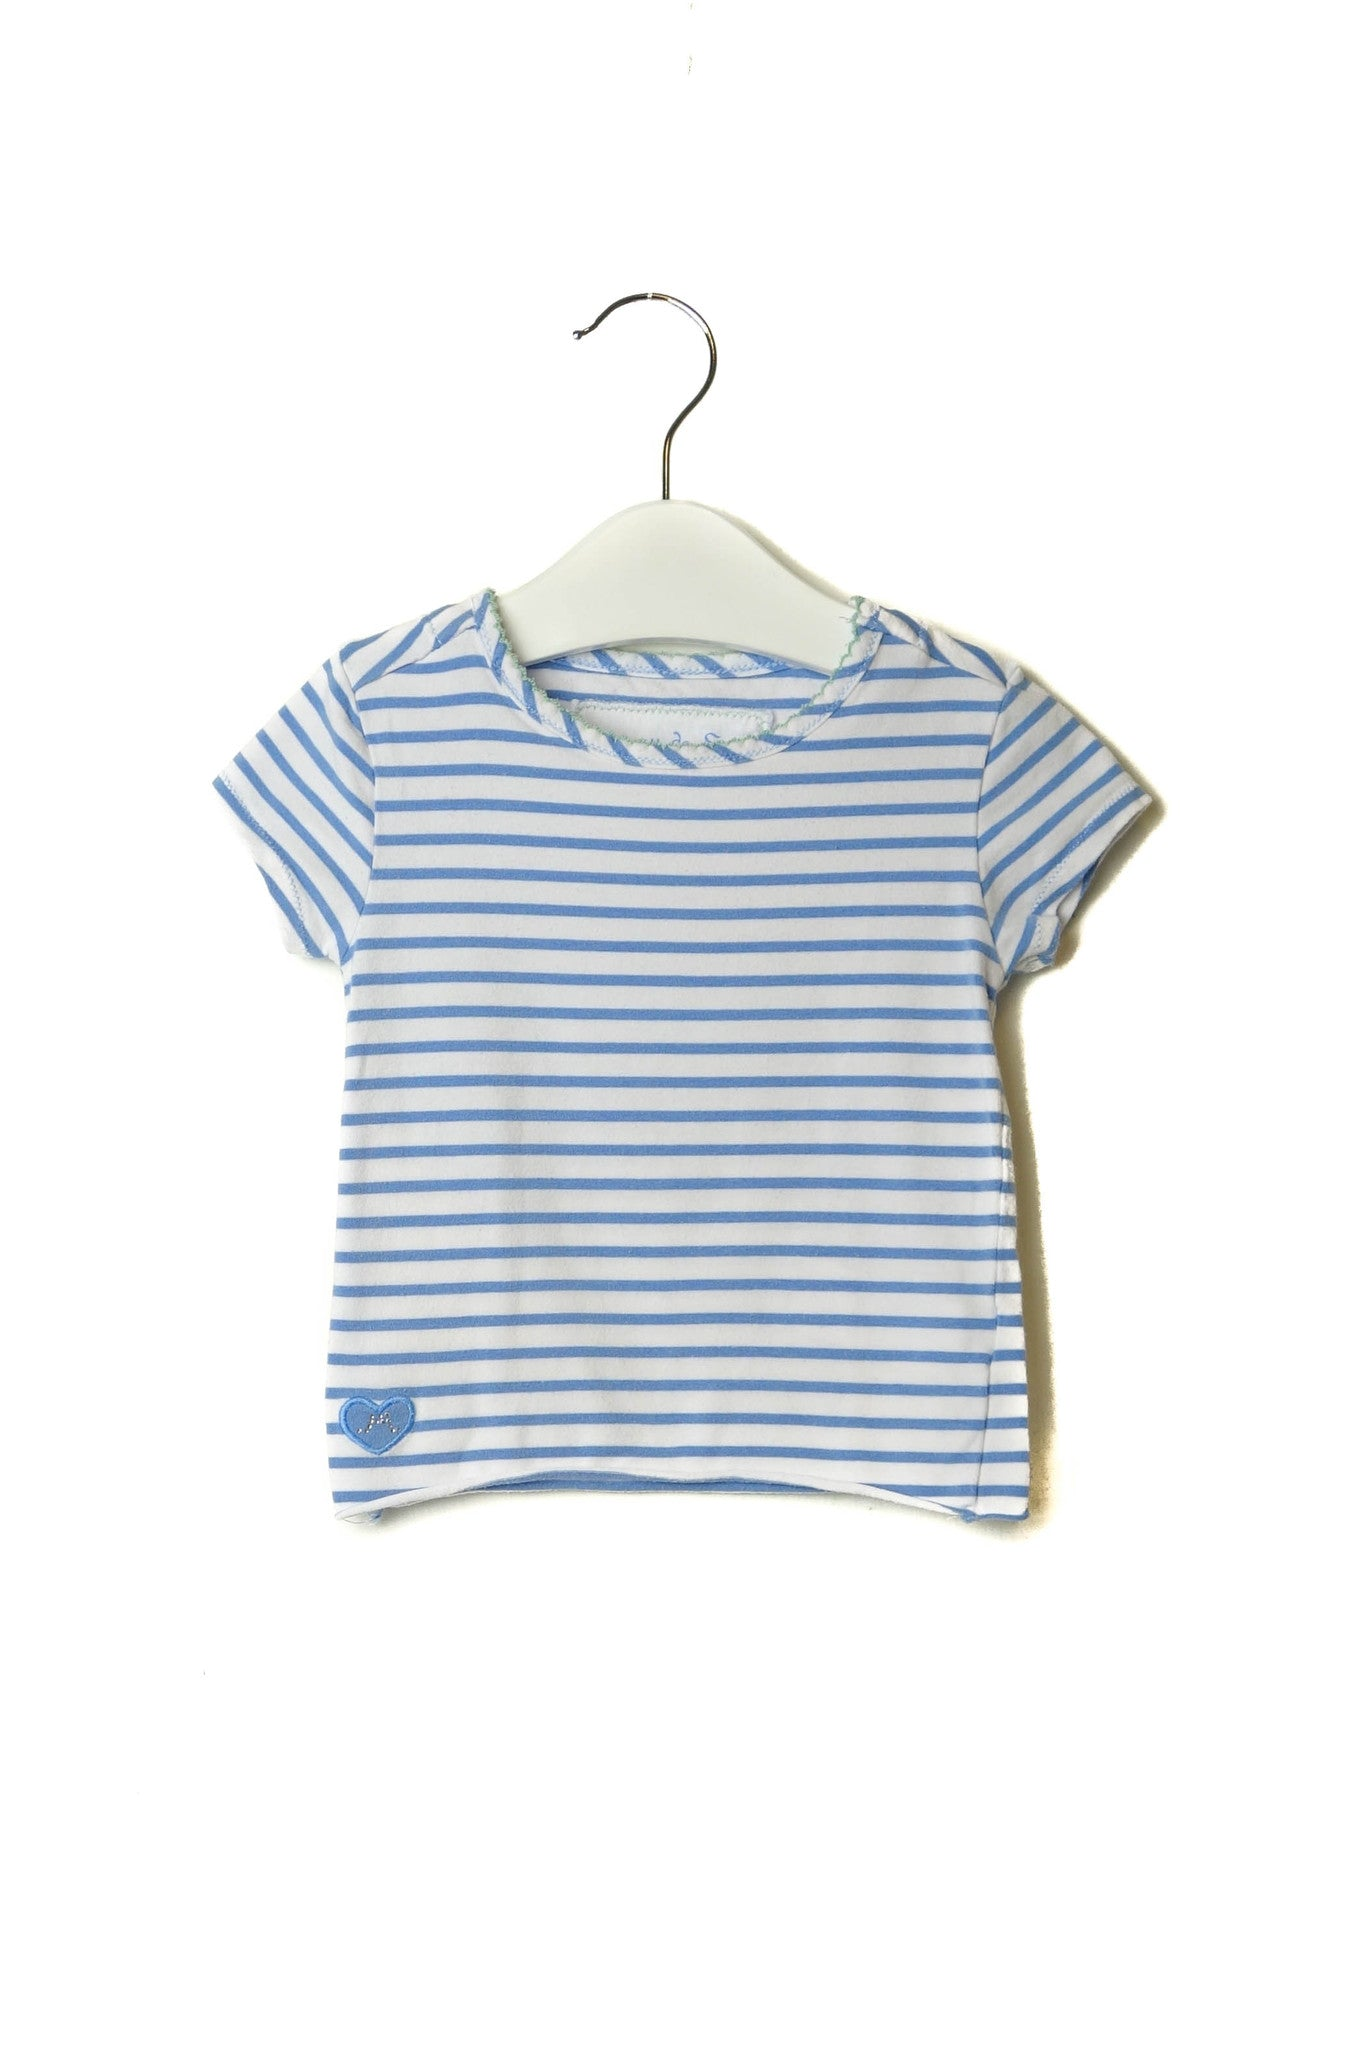 10002457 Chateau de Sable Baby~T-Shirt 12M at Retykle